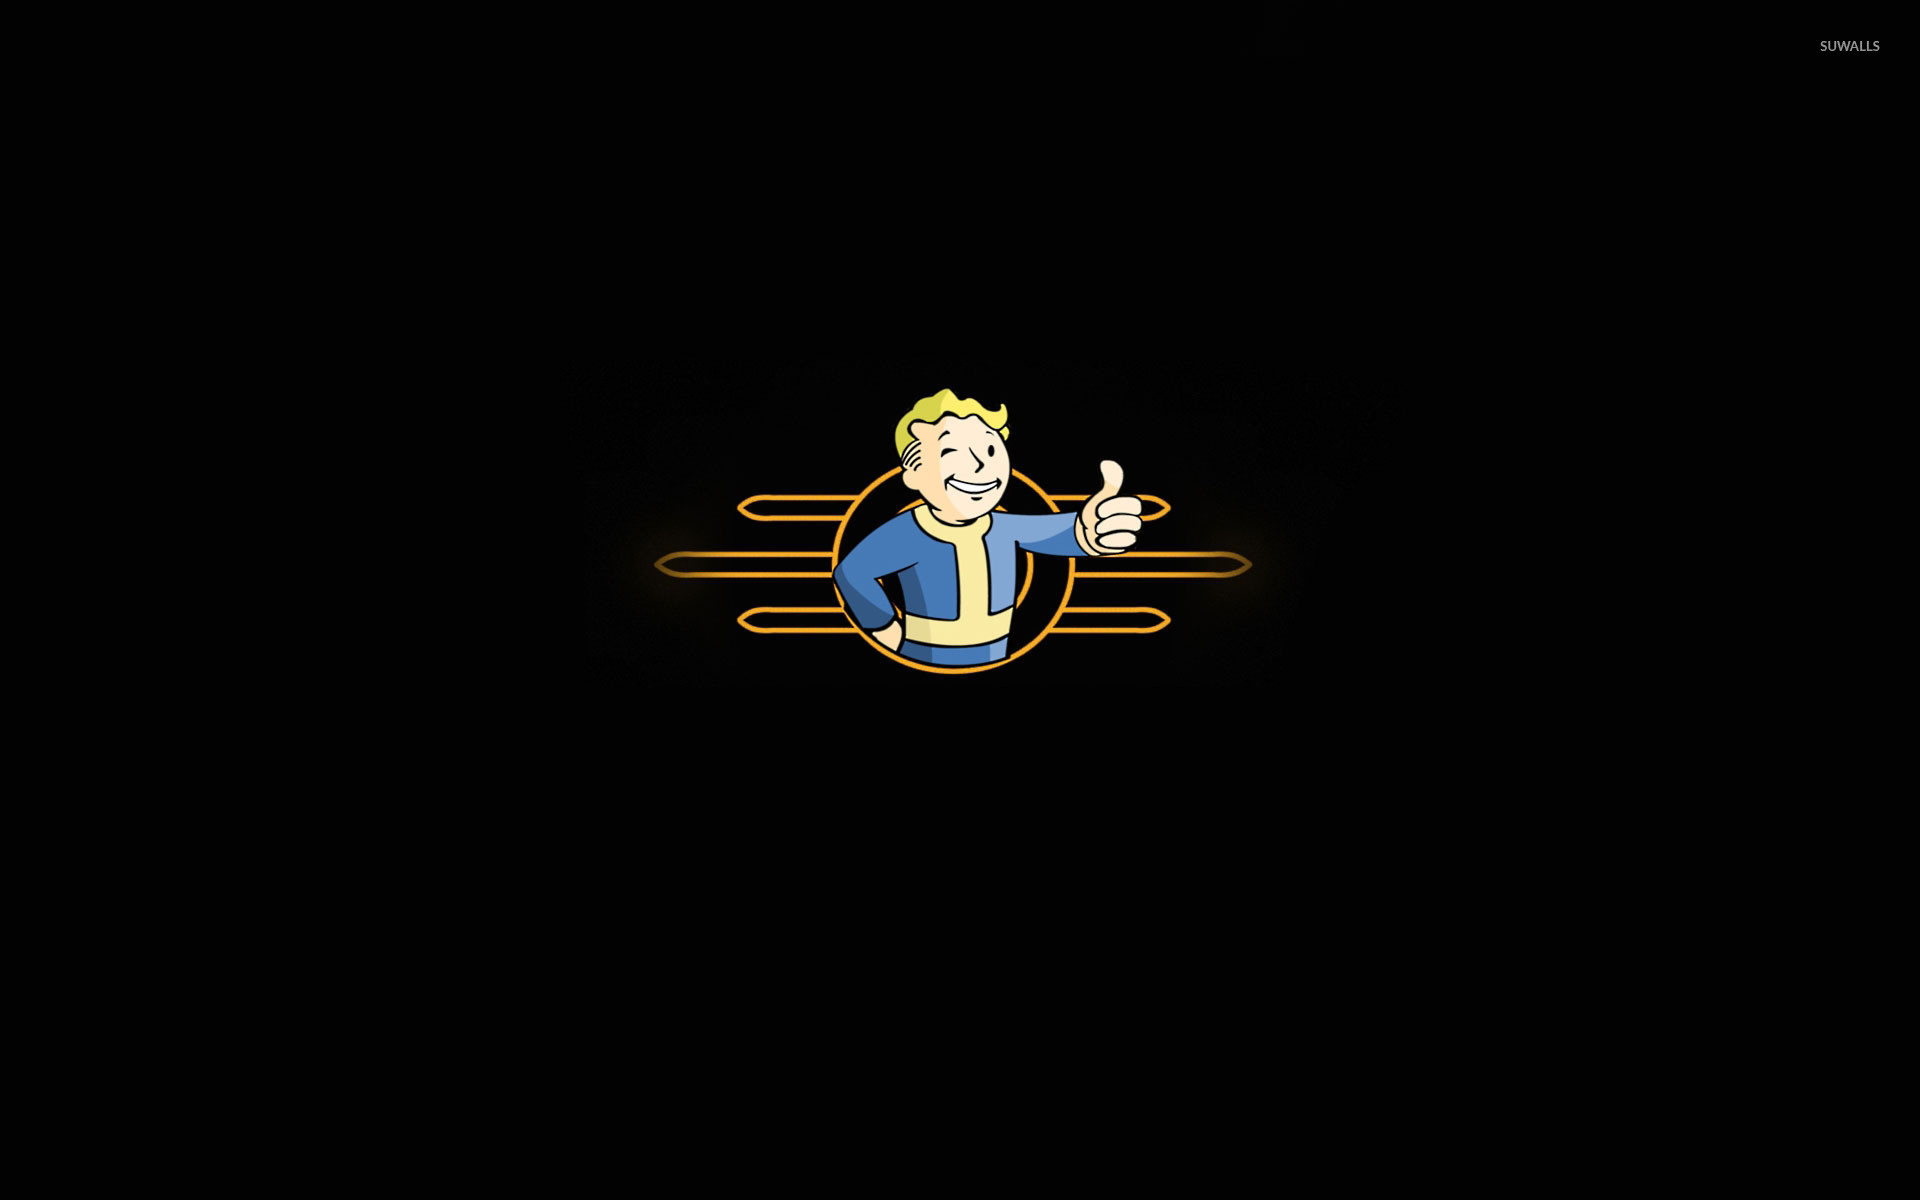 Fallout 4 Pipboy Wallpaper 85 images